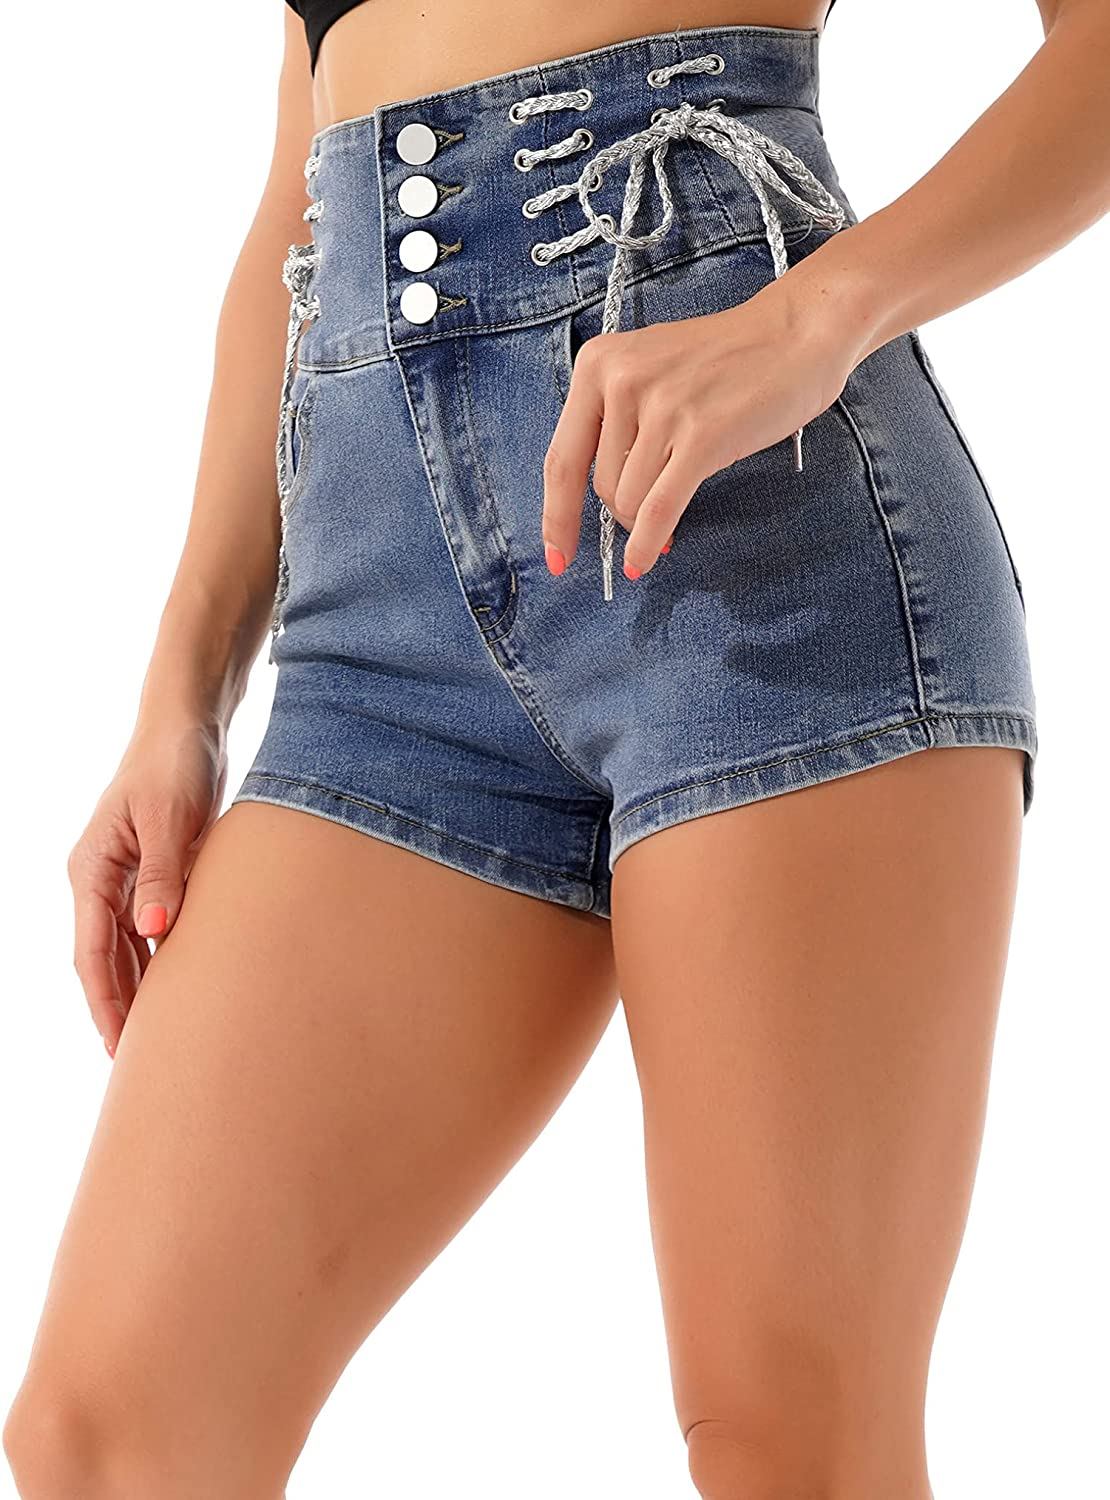 Freebily Women's High Waist Lace-Up Denim Shorts Slim Fit Jeans Sexy Back Hollow Out Hot Pants